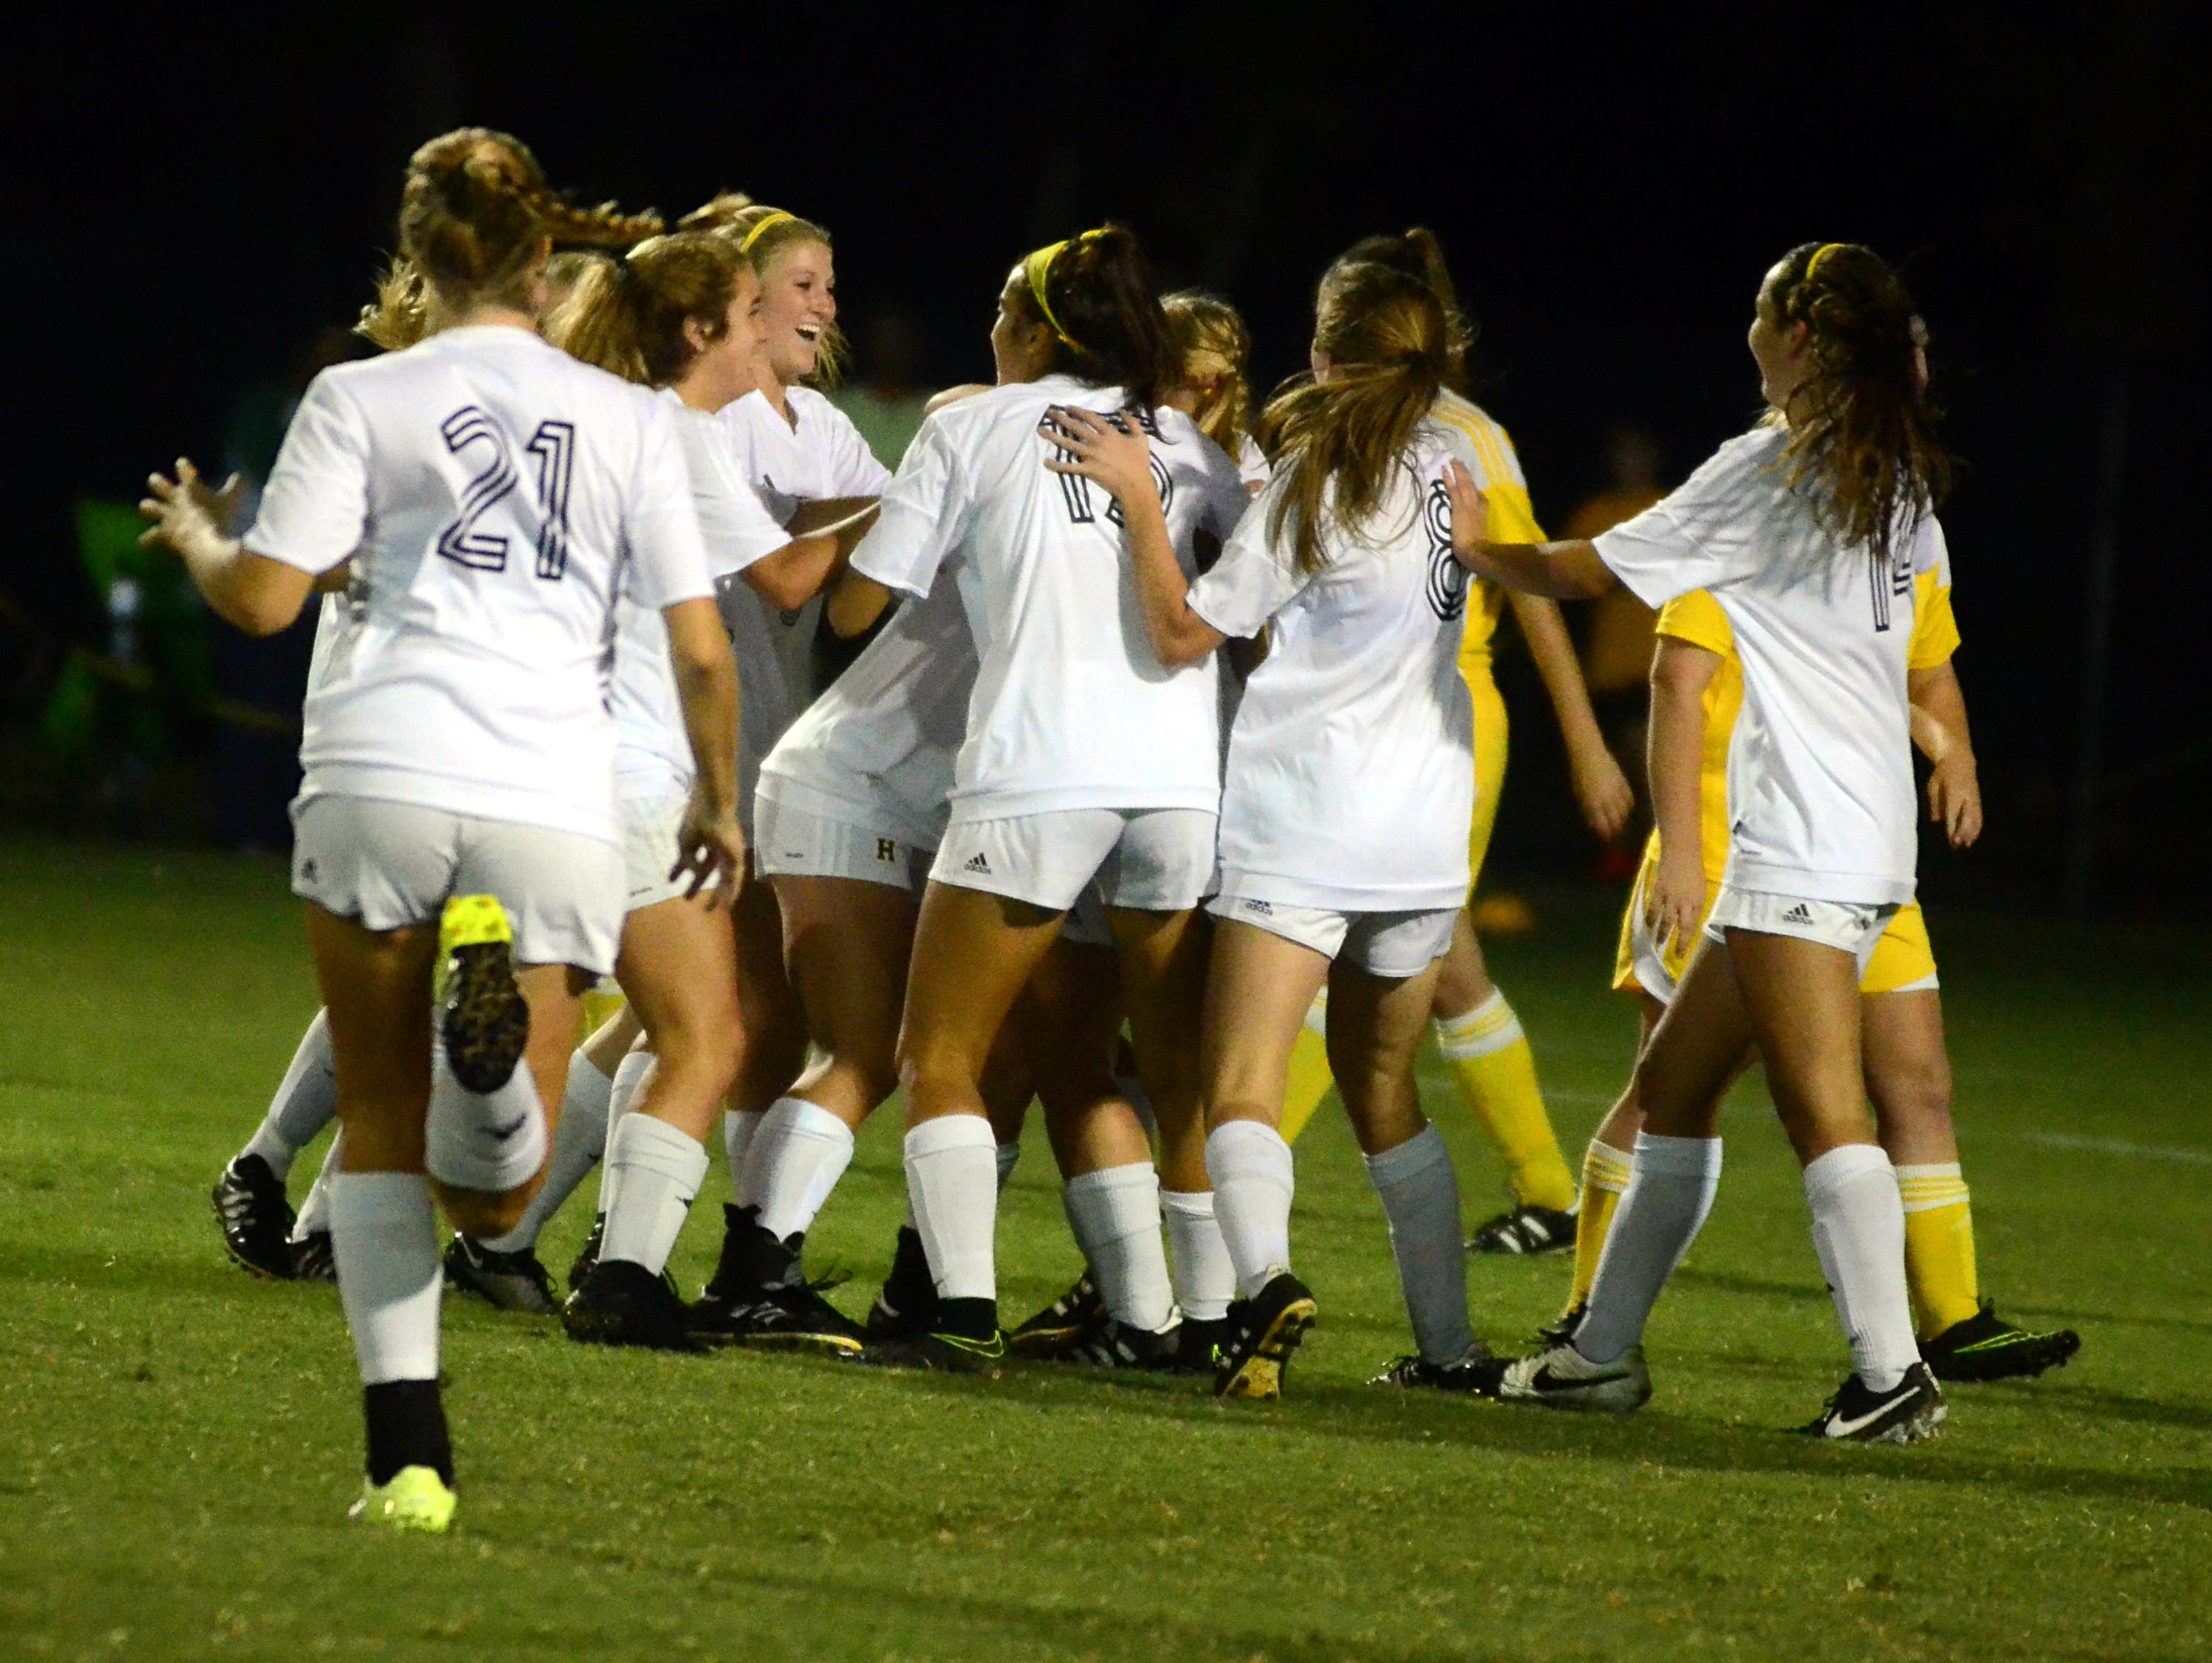 Teammates congratulate Hendersonville senior Jada Campbell after the first of her two goals during Thursday's 6-3 victory over Gallatin.